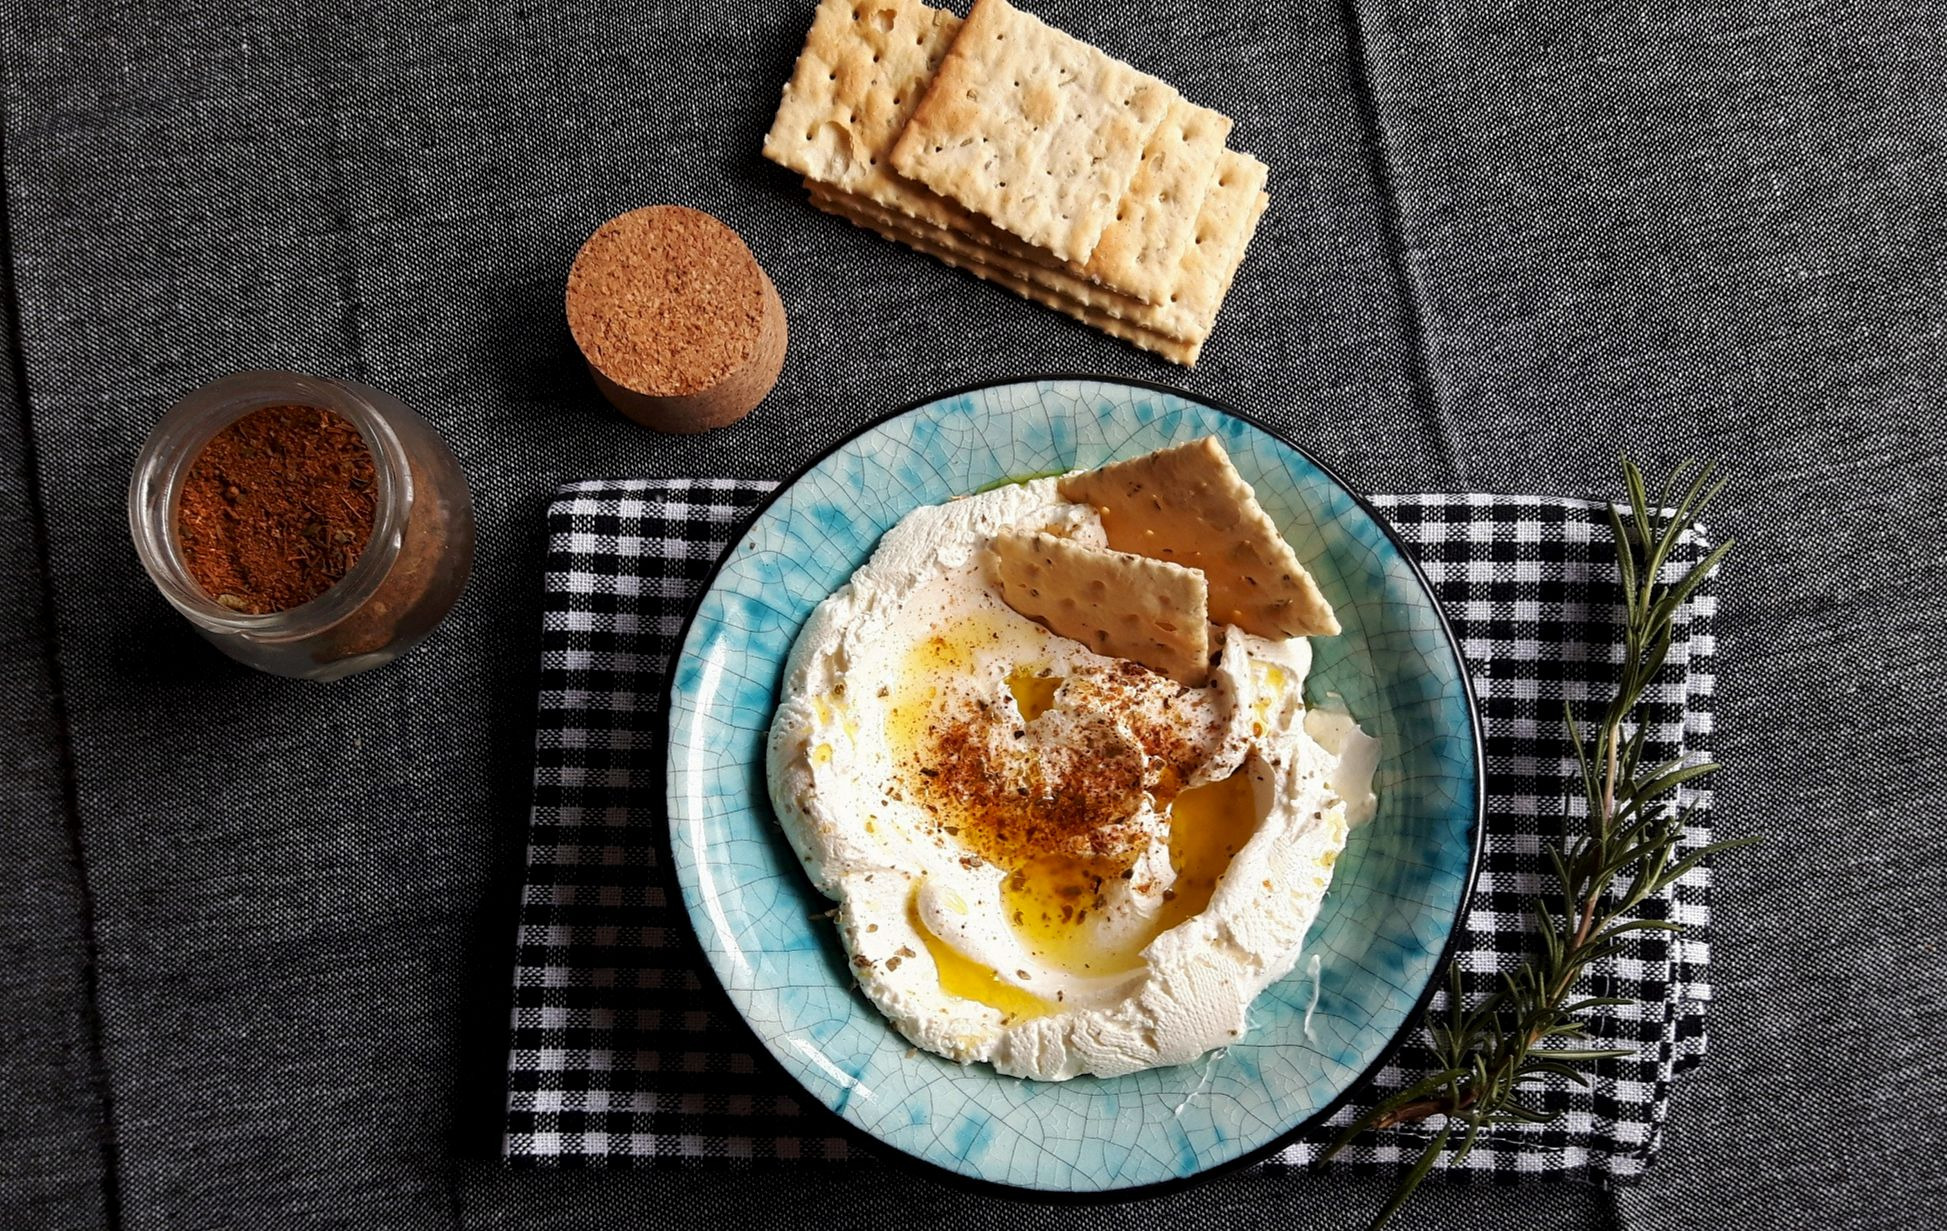 labneh-the-oriental-yogurt-cheese-has-a-place-in-my-transylvanian-kitchen